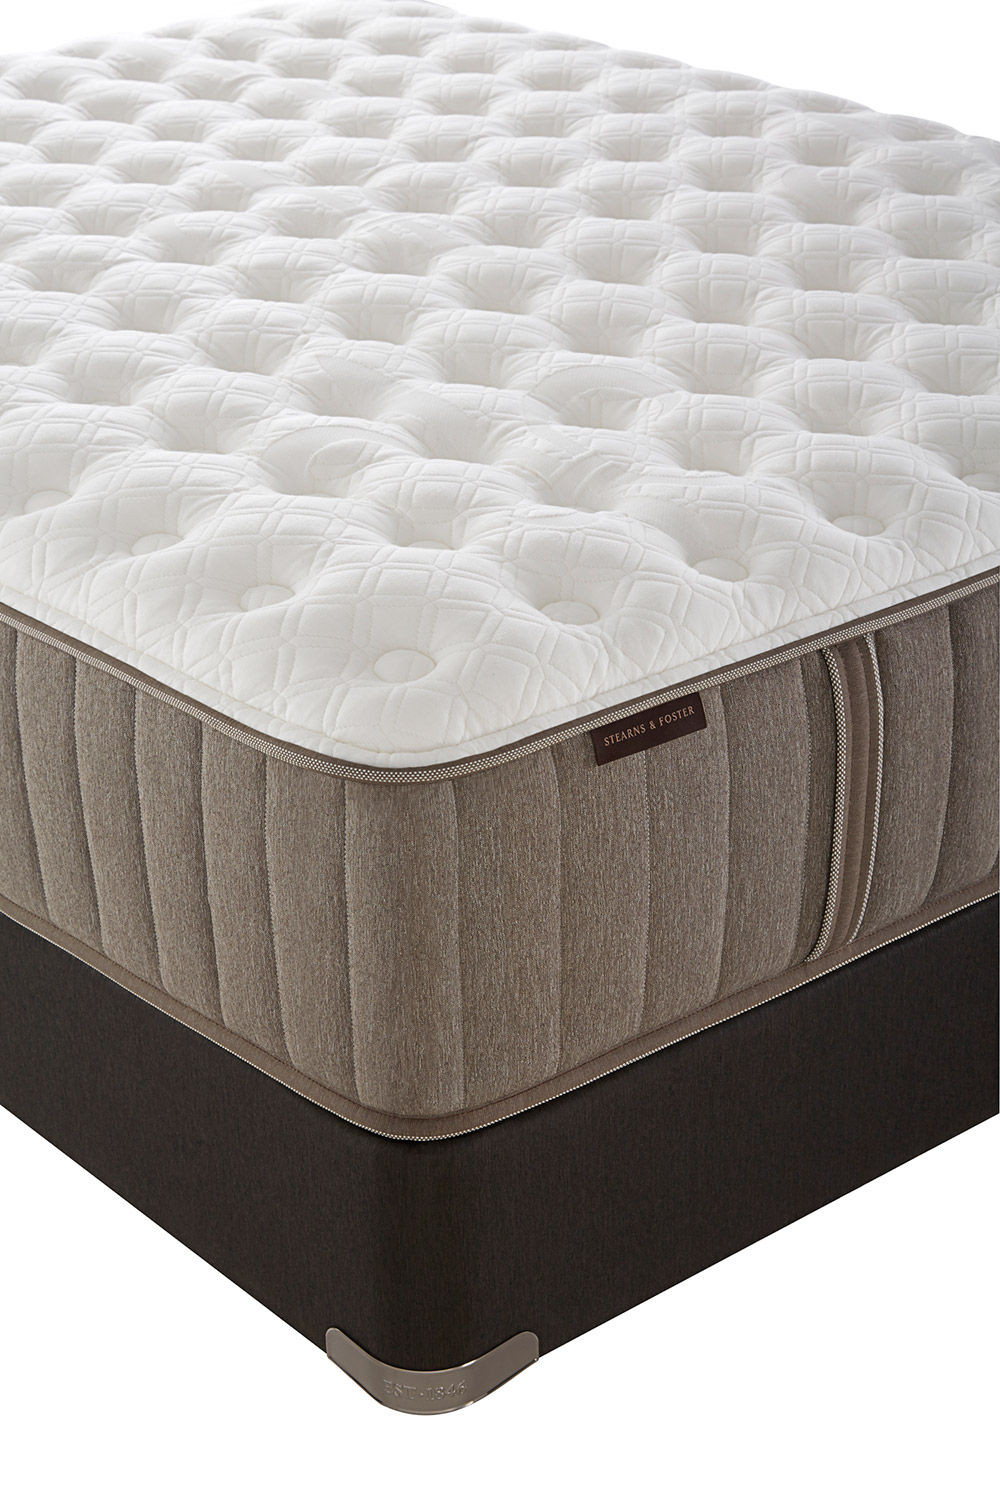 Picture of Stearns & Foster Scarborough Firm Tighttop King Mattress Only